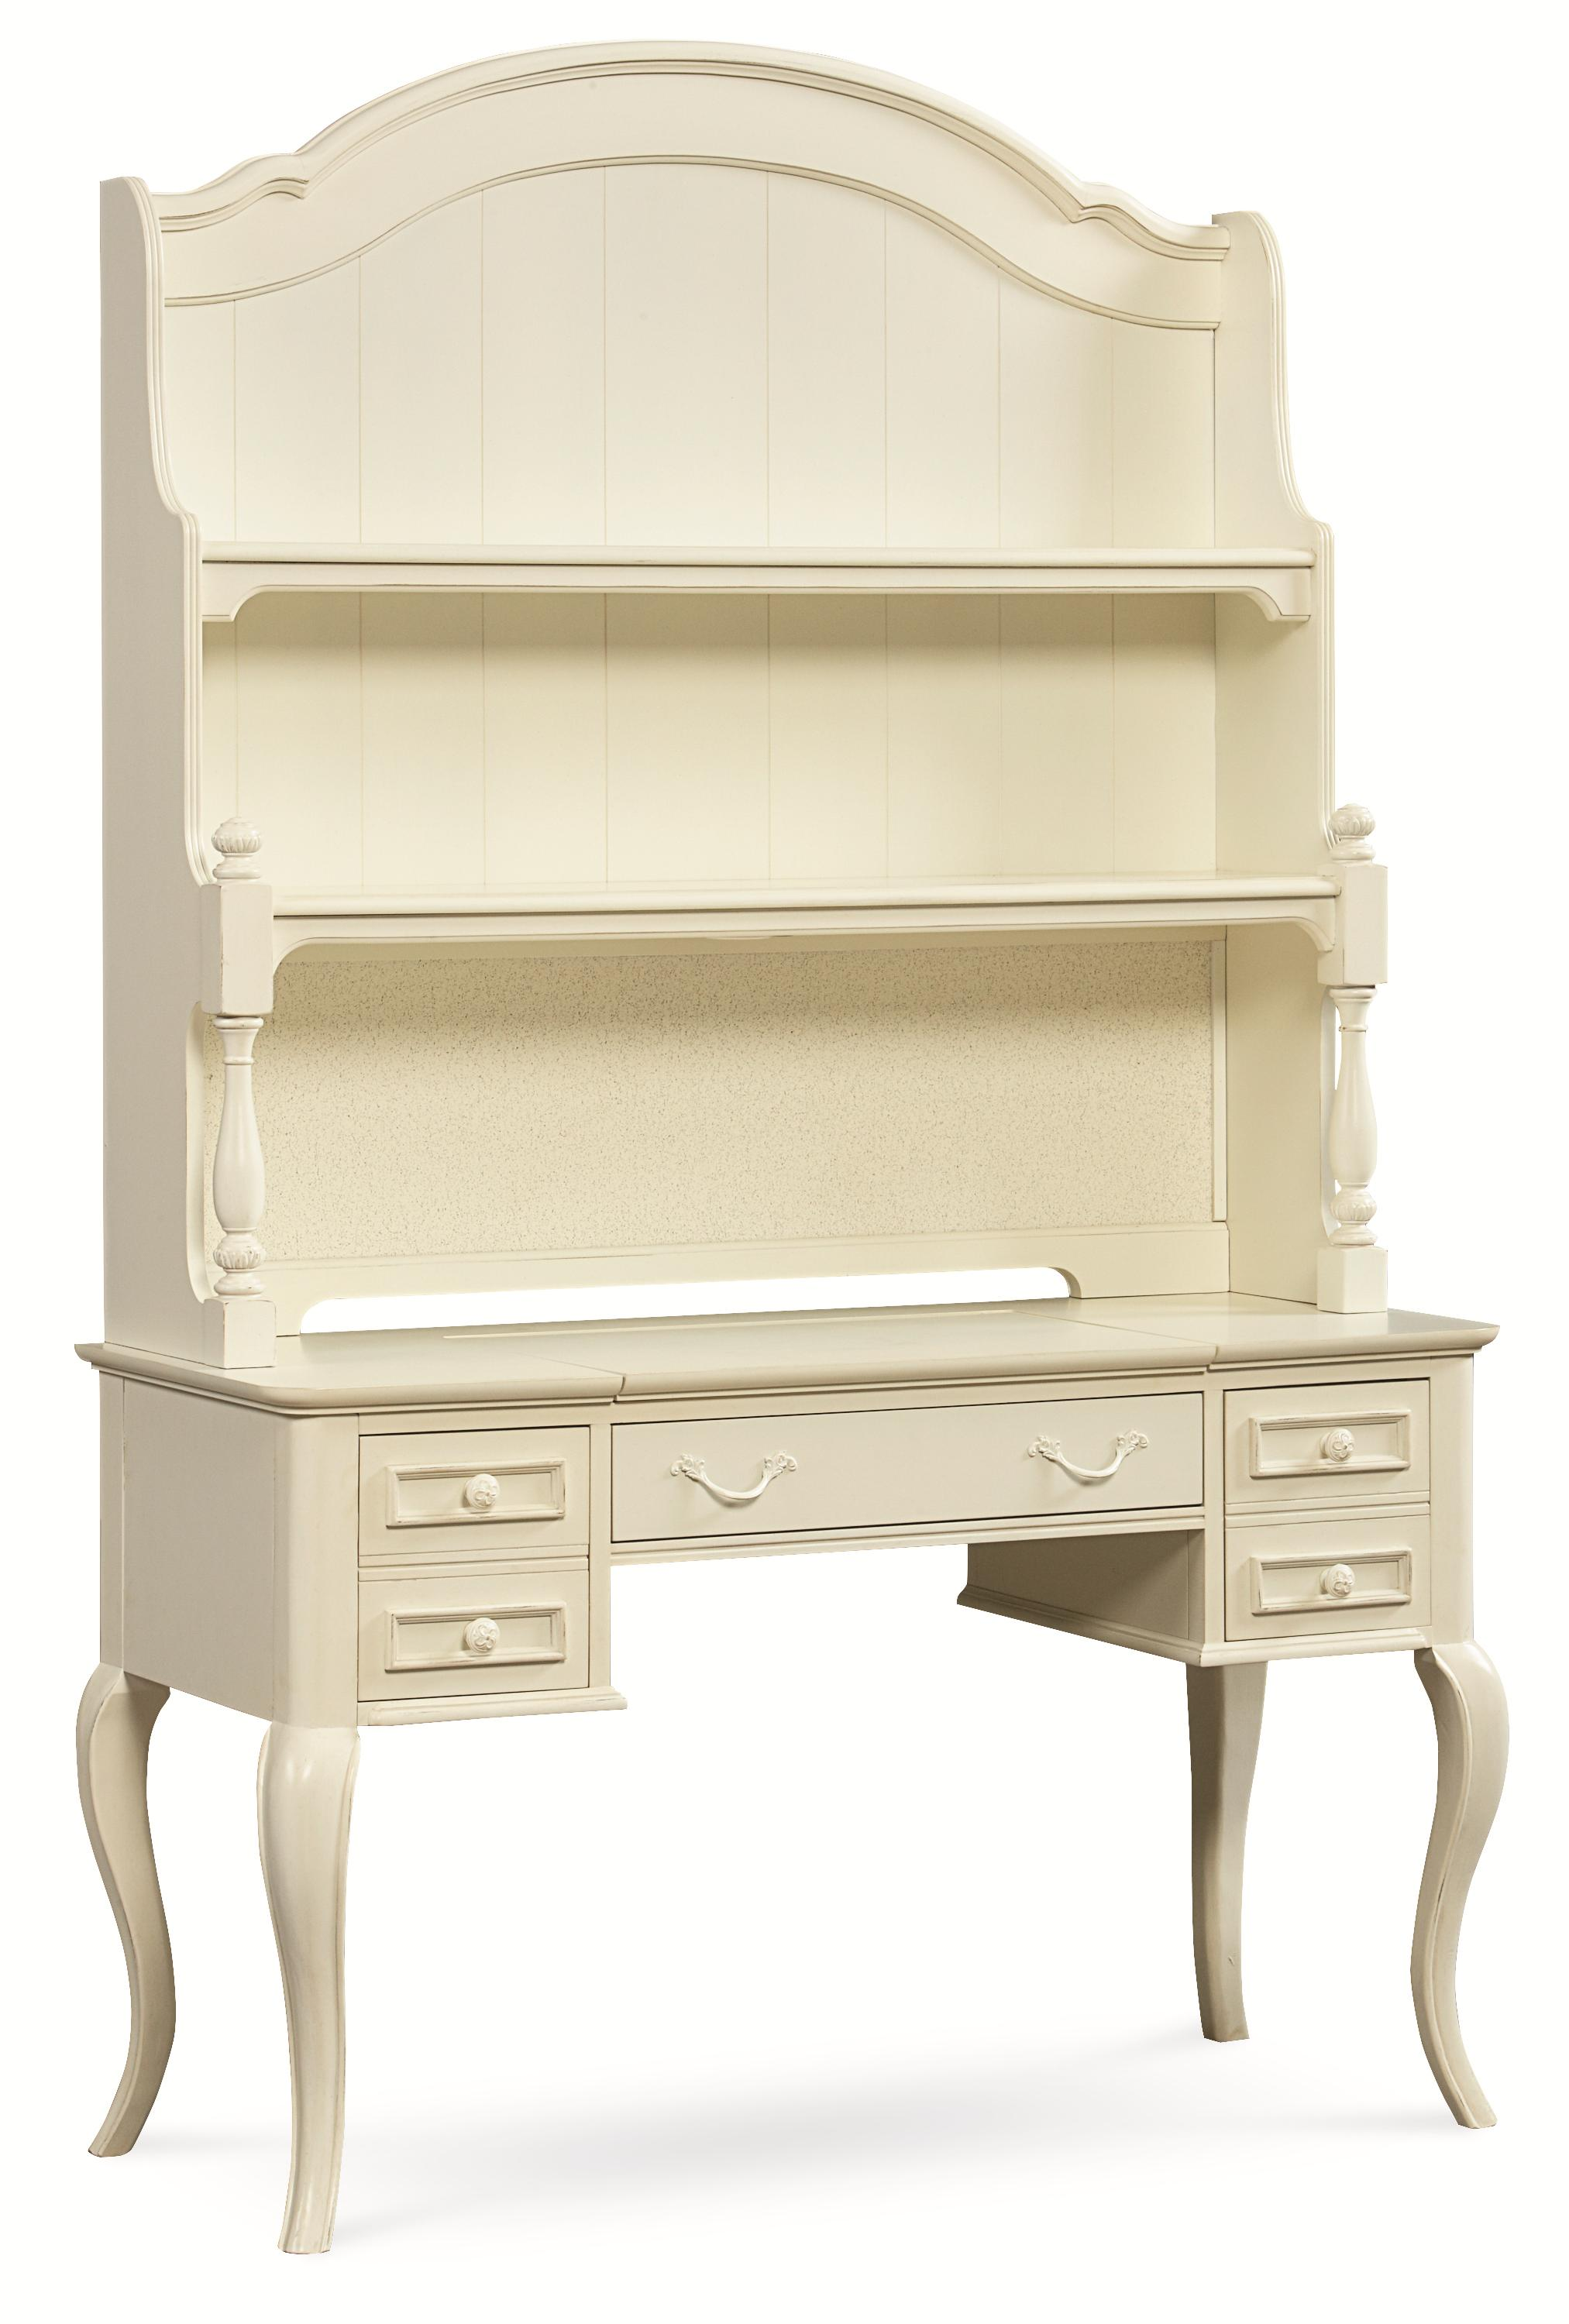 Legacy Classic Kids Charlotte Desk with Hutch - Item Number: 3850-6100+6200